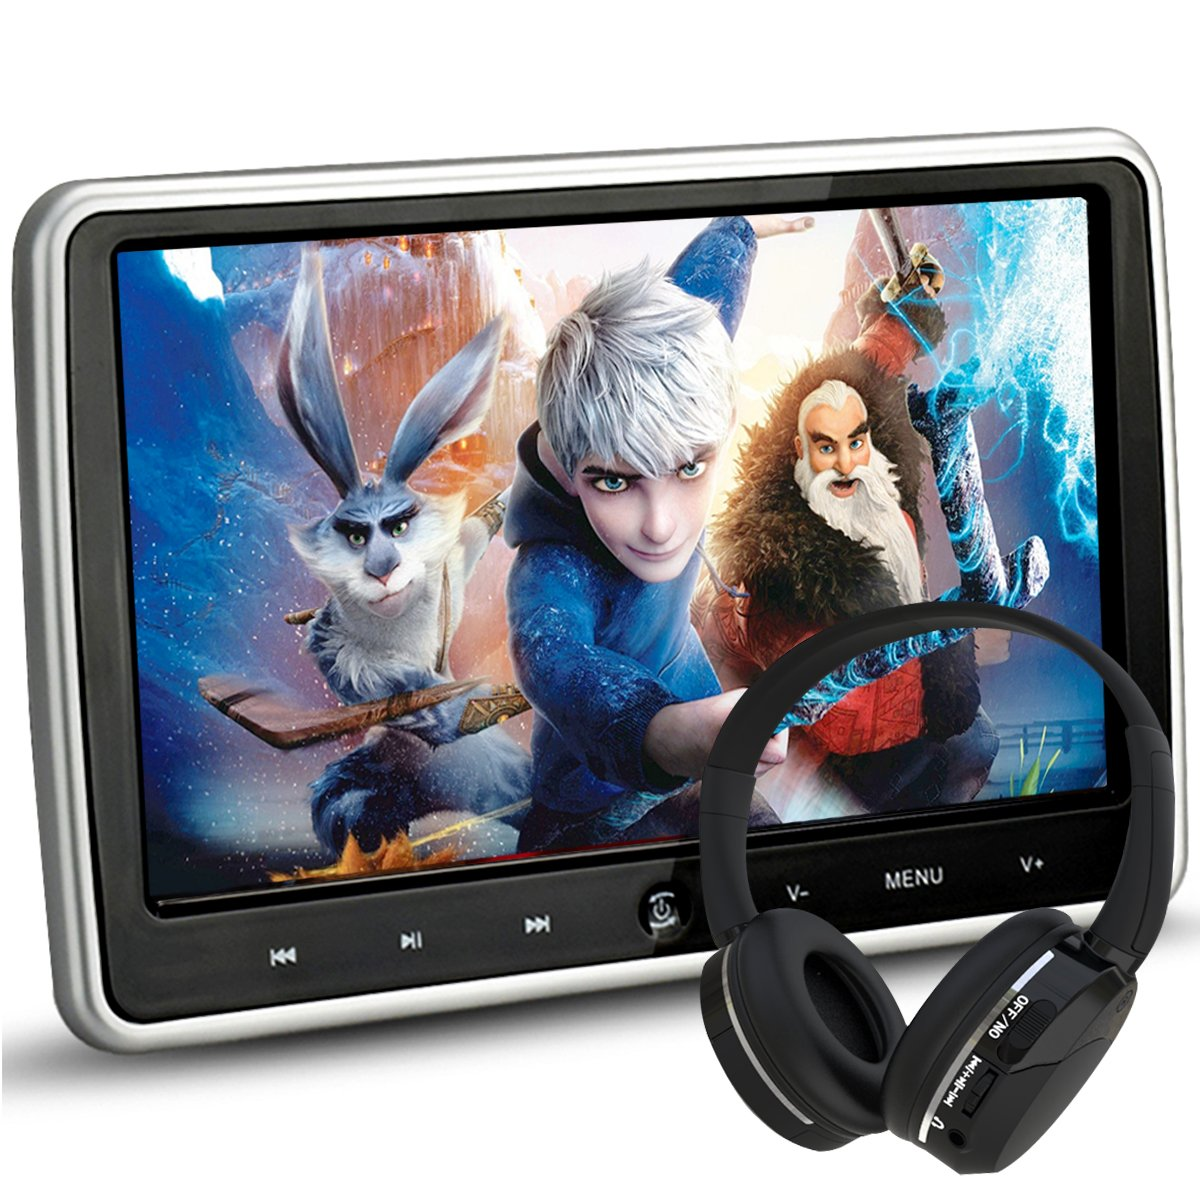 NOAUKA 10.1'' Ultra Thin Portable Digital HD TFT LCD Headrest DVD Player Car Multimedia Wide Screen Display Player Headrest Monitor with HDMI and Remote Control and IR Headphone by NOAUKA